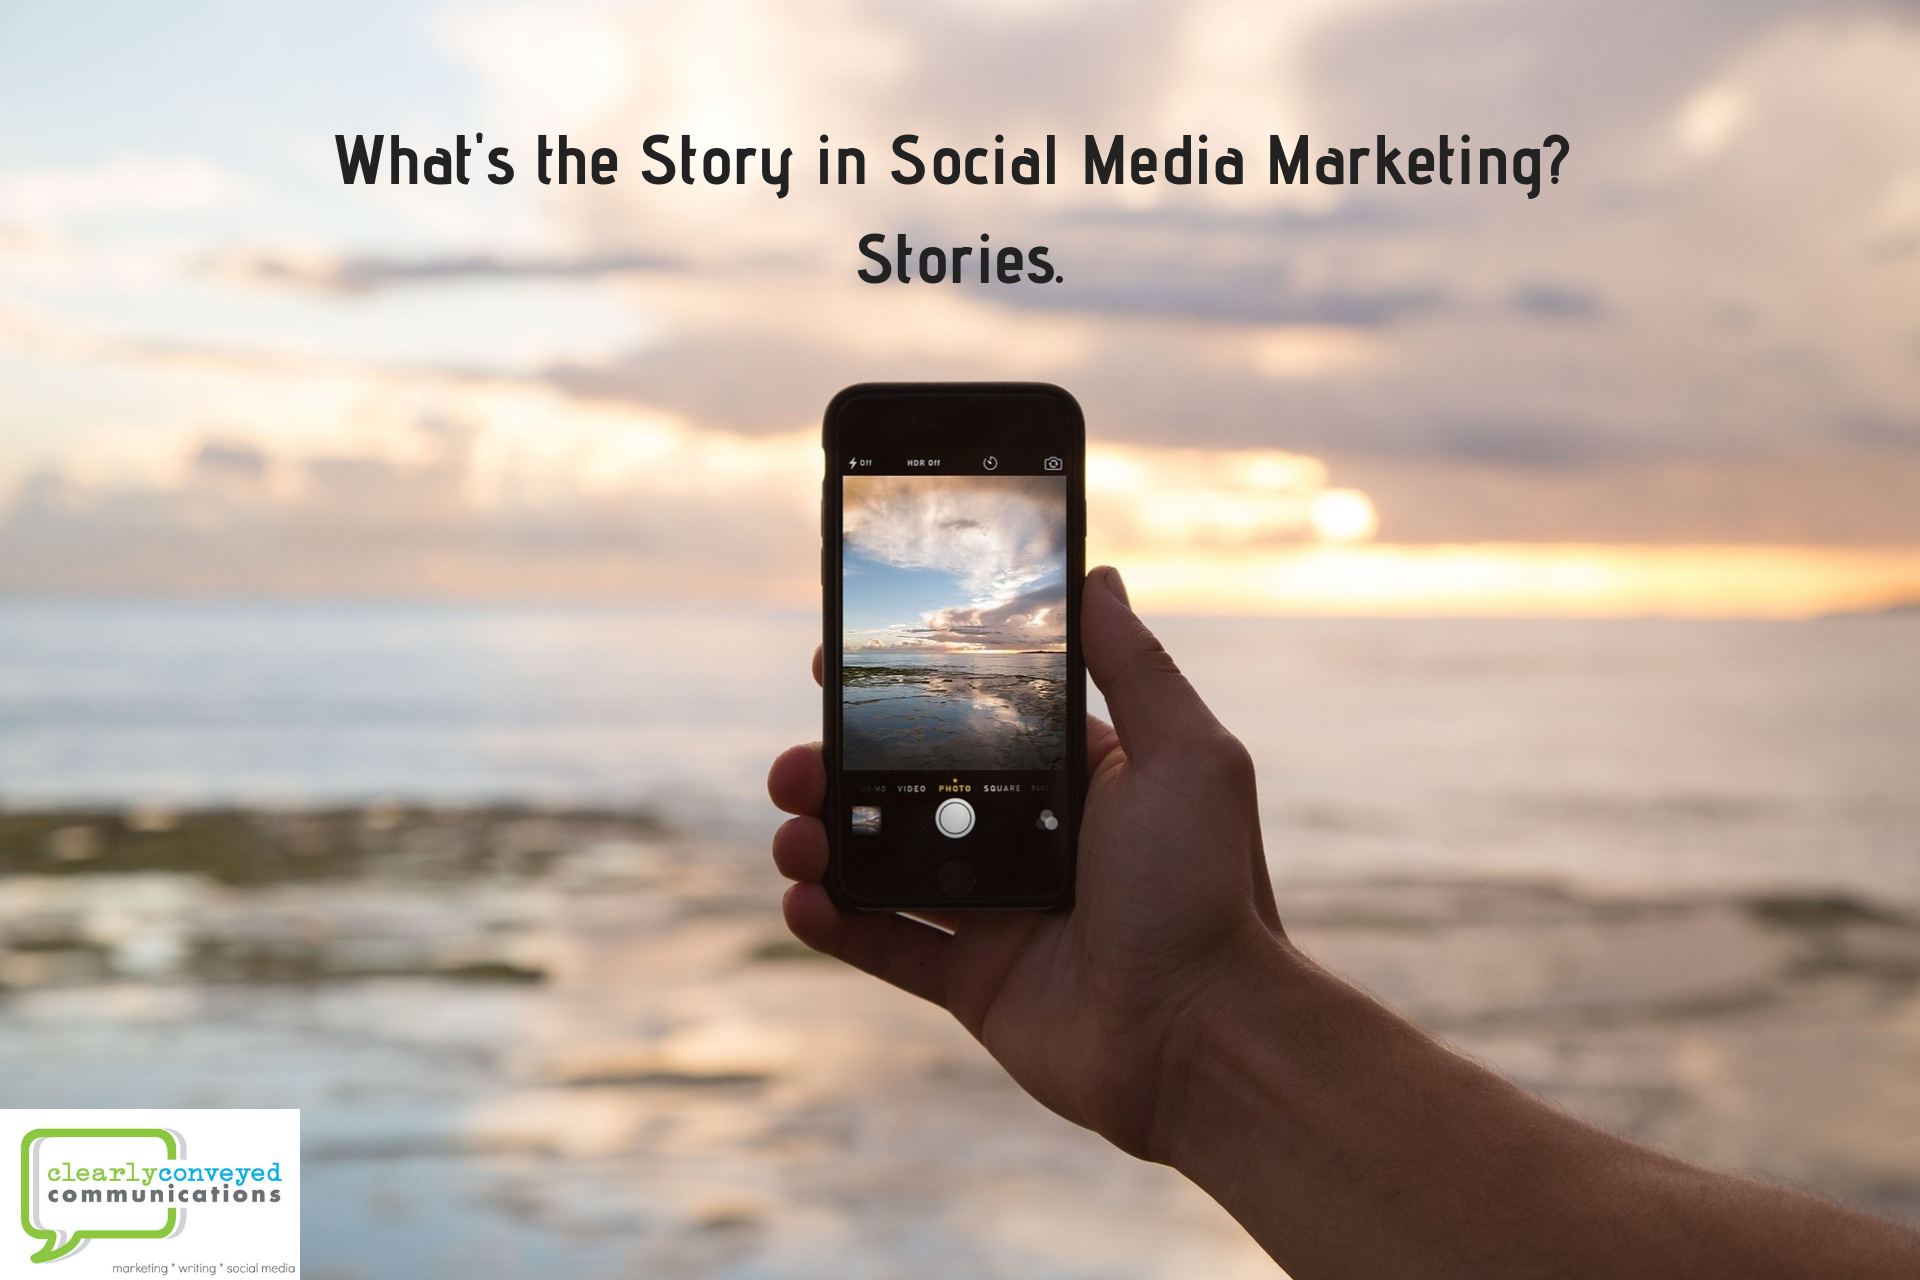 What's the story in social media marketing? Stories.